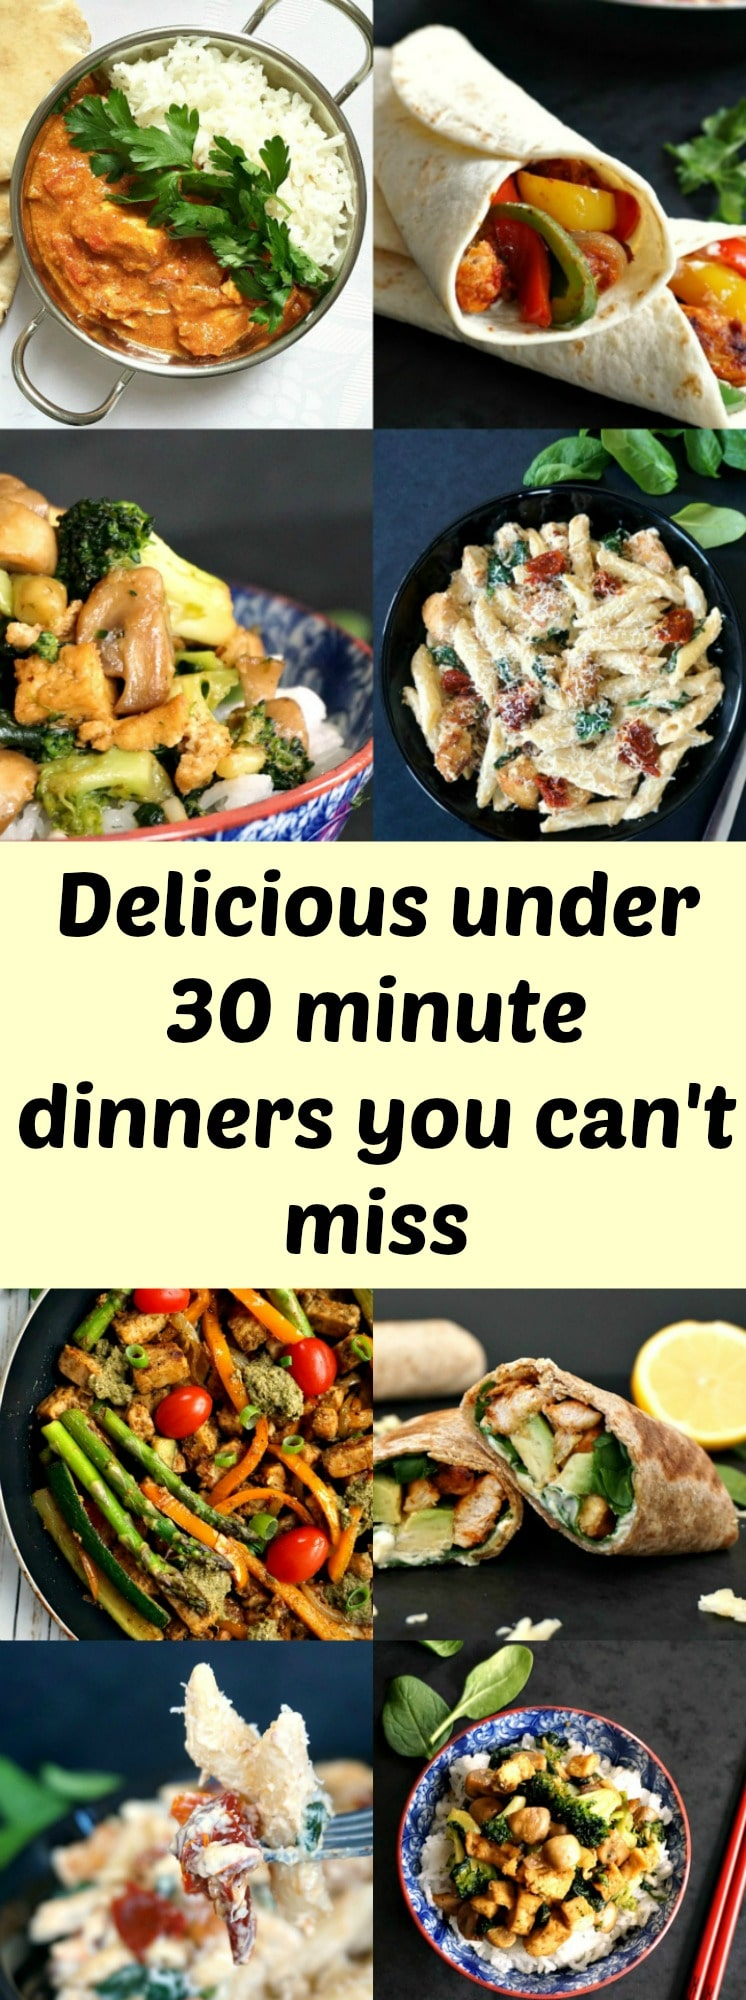 Delicious under 30 minute dinners you can't miss